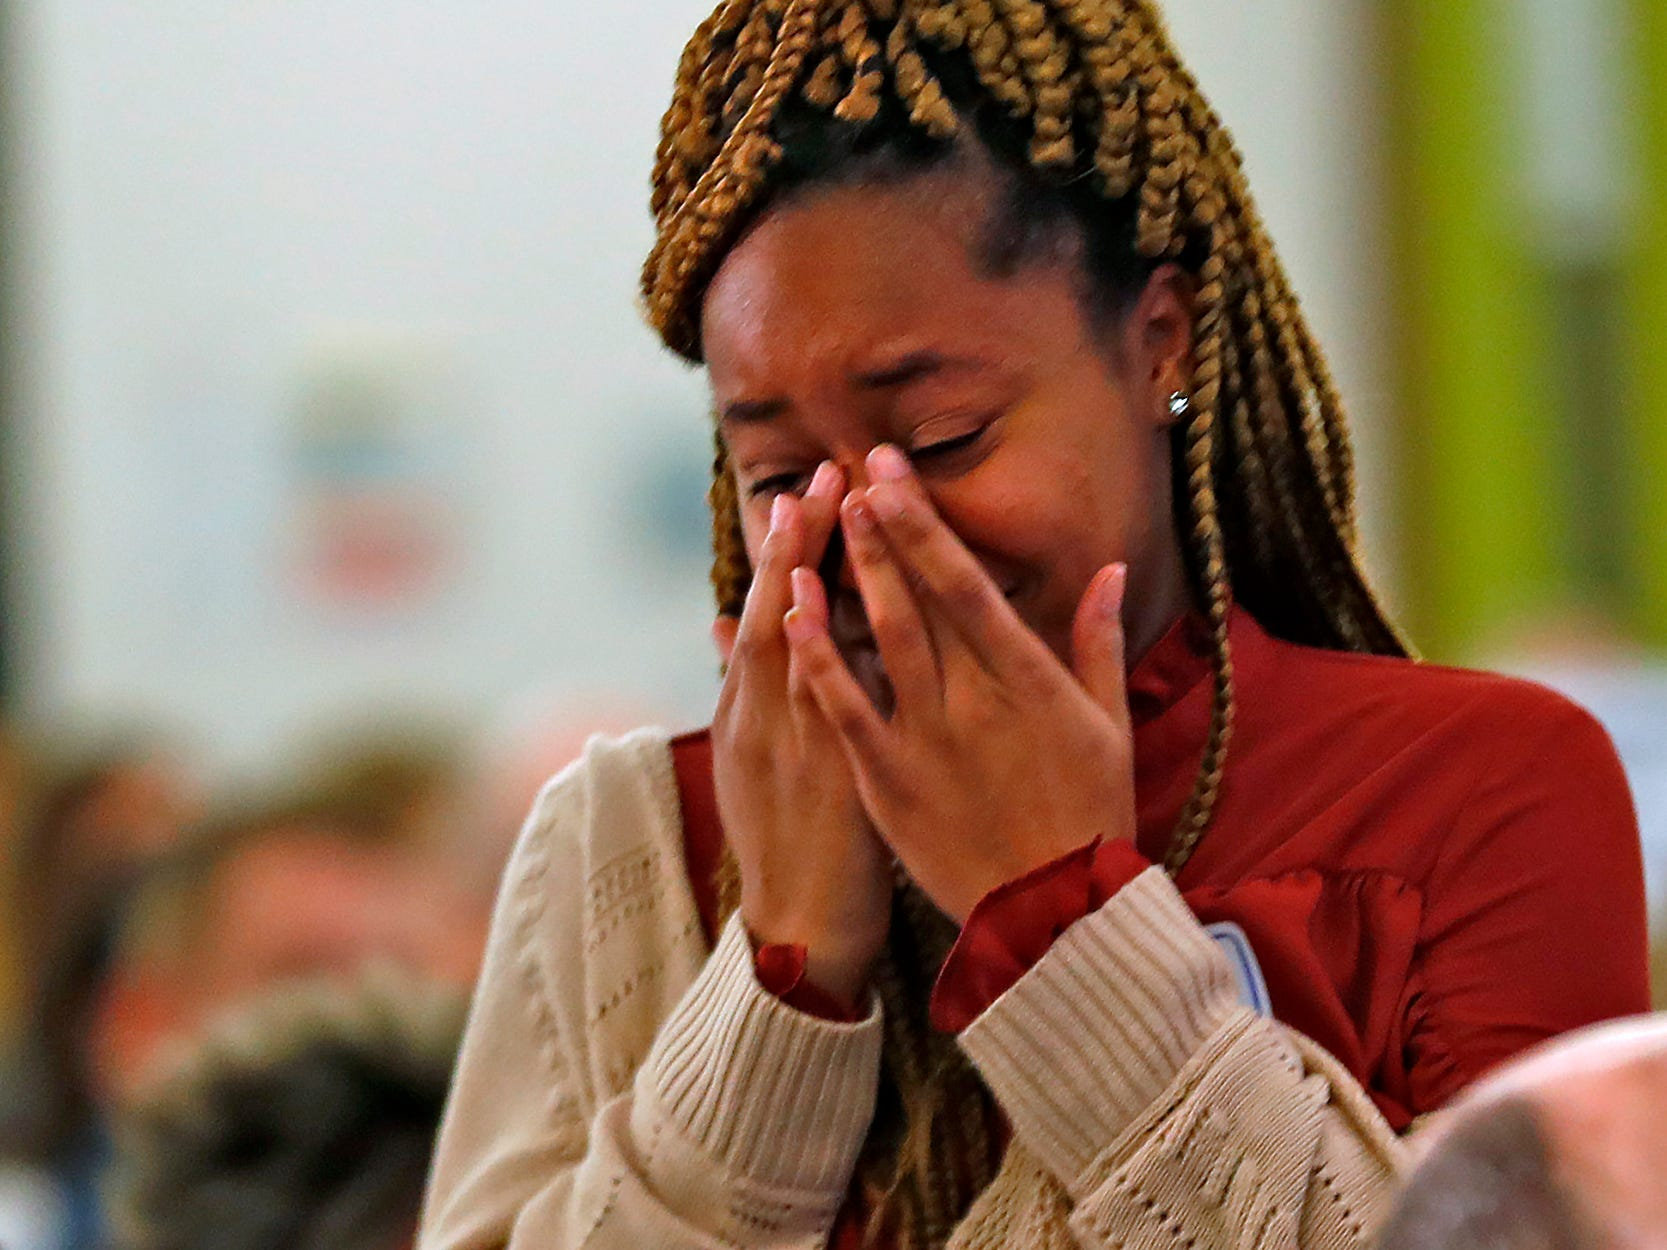 Pike High School student Danielle Jackson wipes away tears of joy as she walks up to receive her 2nd Place Scholarship award at the 44th Annual Abe Lincoln Awards Program, Friday, Feb. 8, 2019. The Kiwanis Club of Indianapolis program was held at Ivy Tech Community College.  20 high school student were honored at the annual event which celebrates overcoming adversity in life to succeed. Four of the 20 students received scholarships.